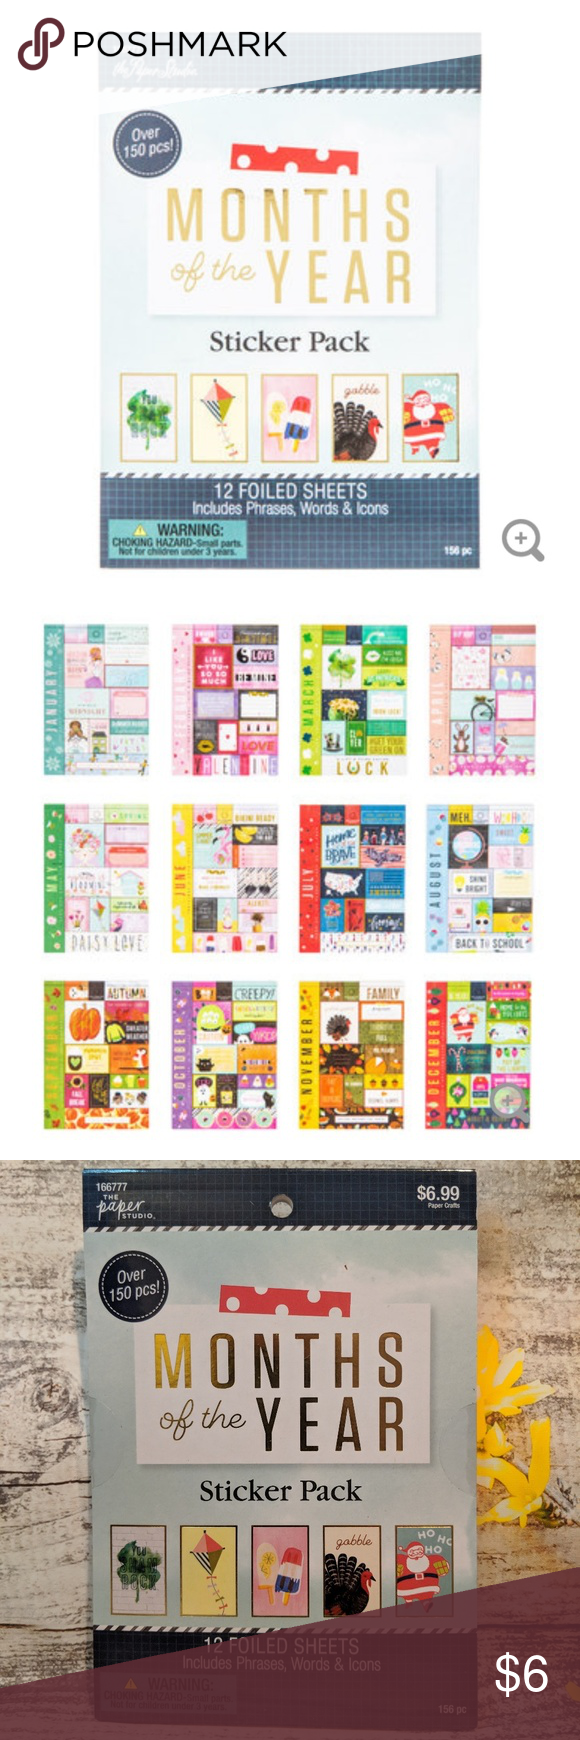 Months of the Year Sticker Pack 150 Foiled Stickers Paper Place